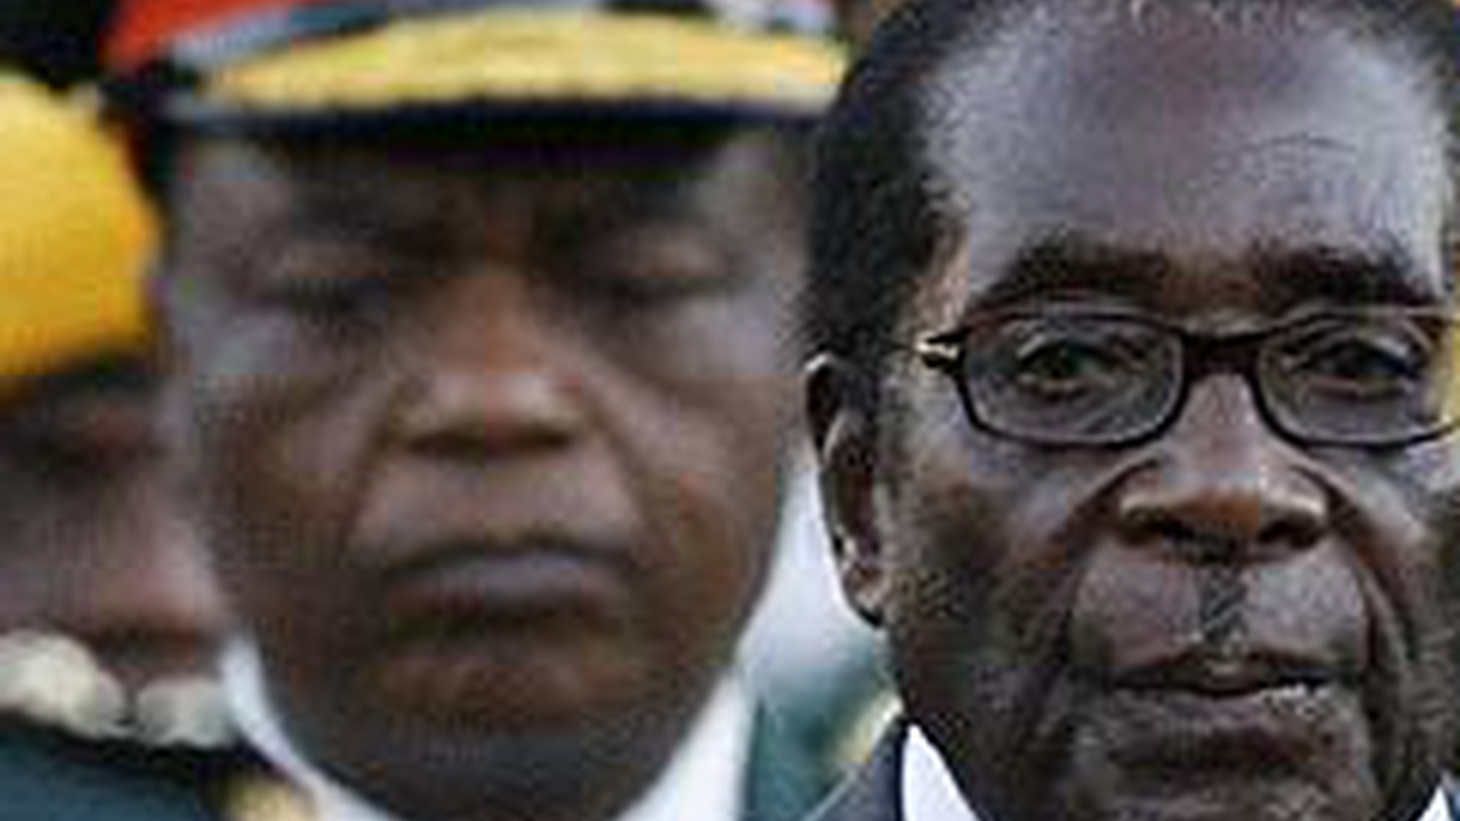 """The western powers call Robert Mugabe's re-election a """"sham,"""" but the President of Zimbabwe is seeking legitimacy at today's summit meeting of the African Union. Also, President Bush sings a $162 Billion war-spending bill, and the rhetoric heats up in the presidential campaign."""